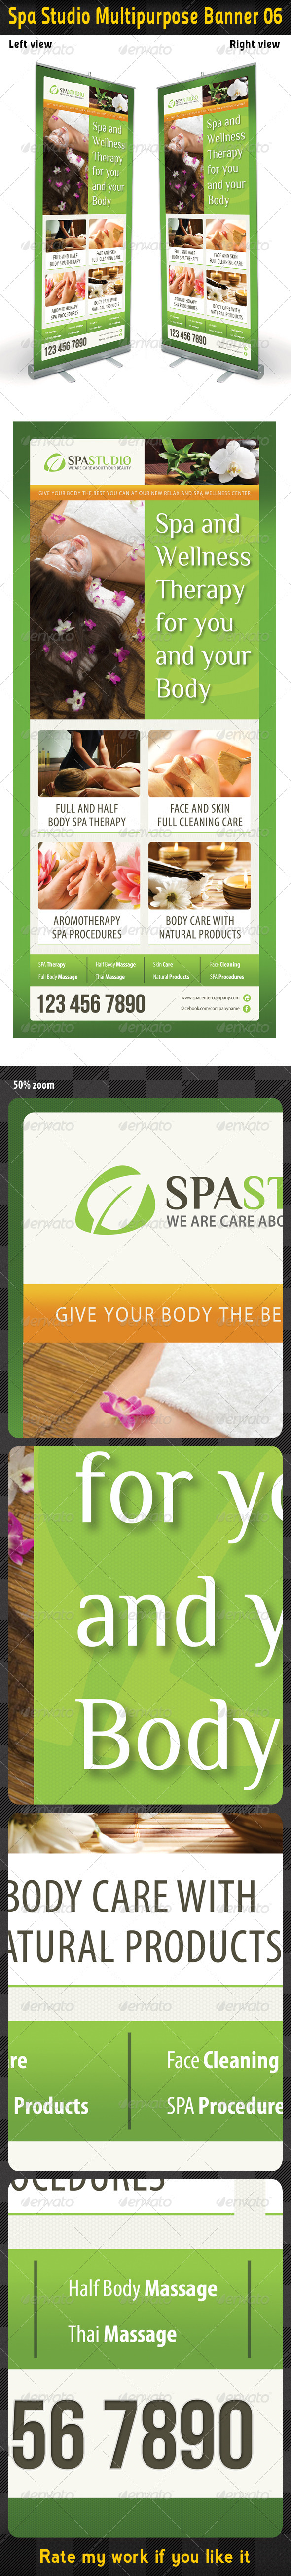 Spa Studio Multipurpose Banner 07